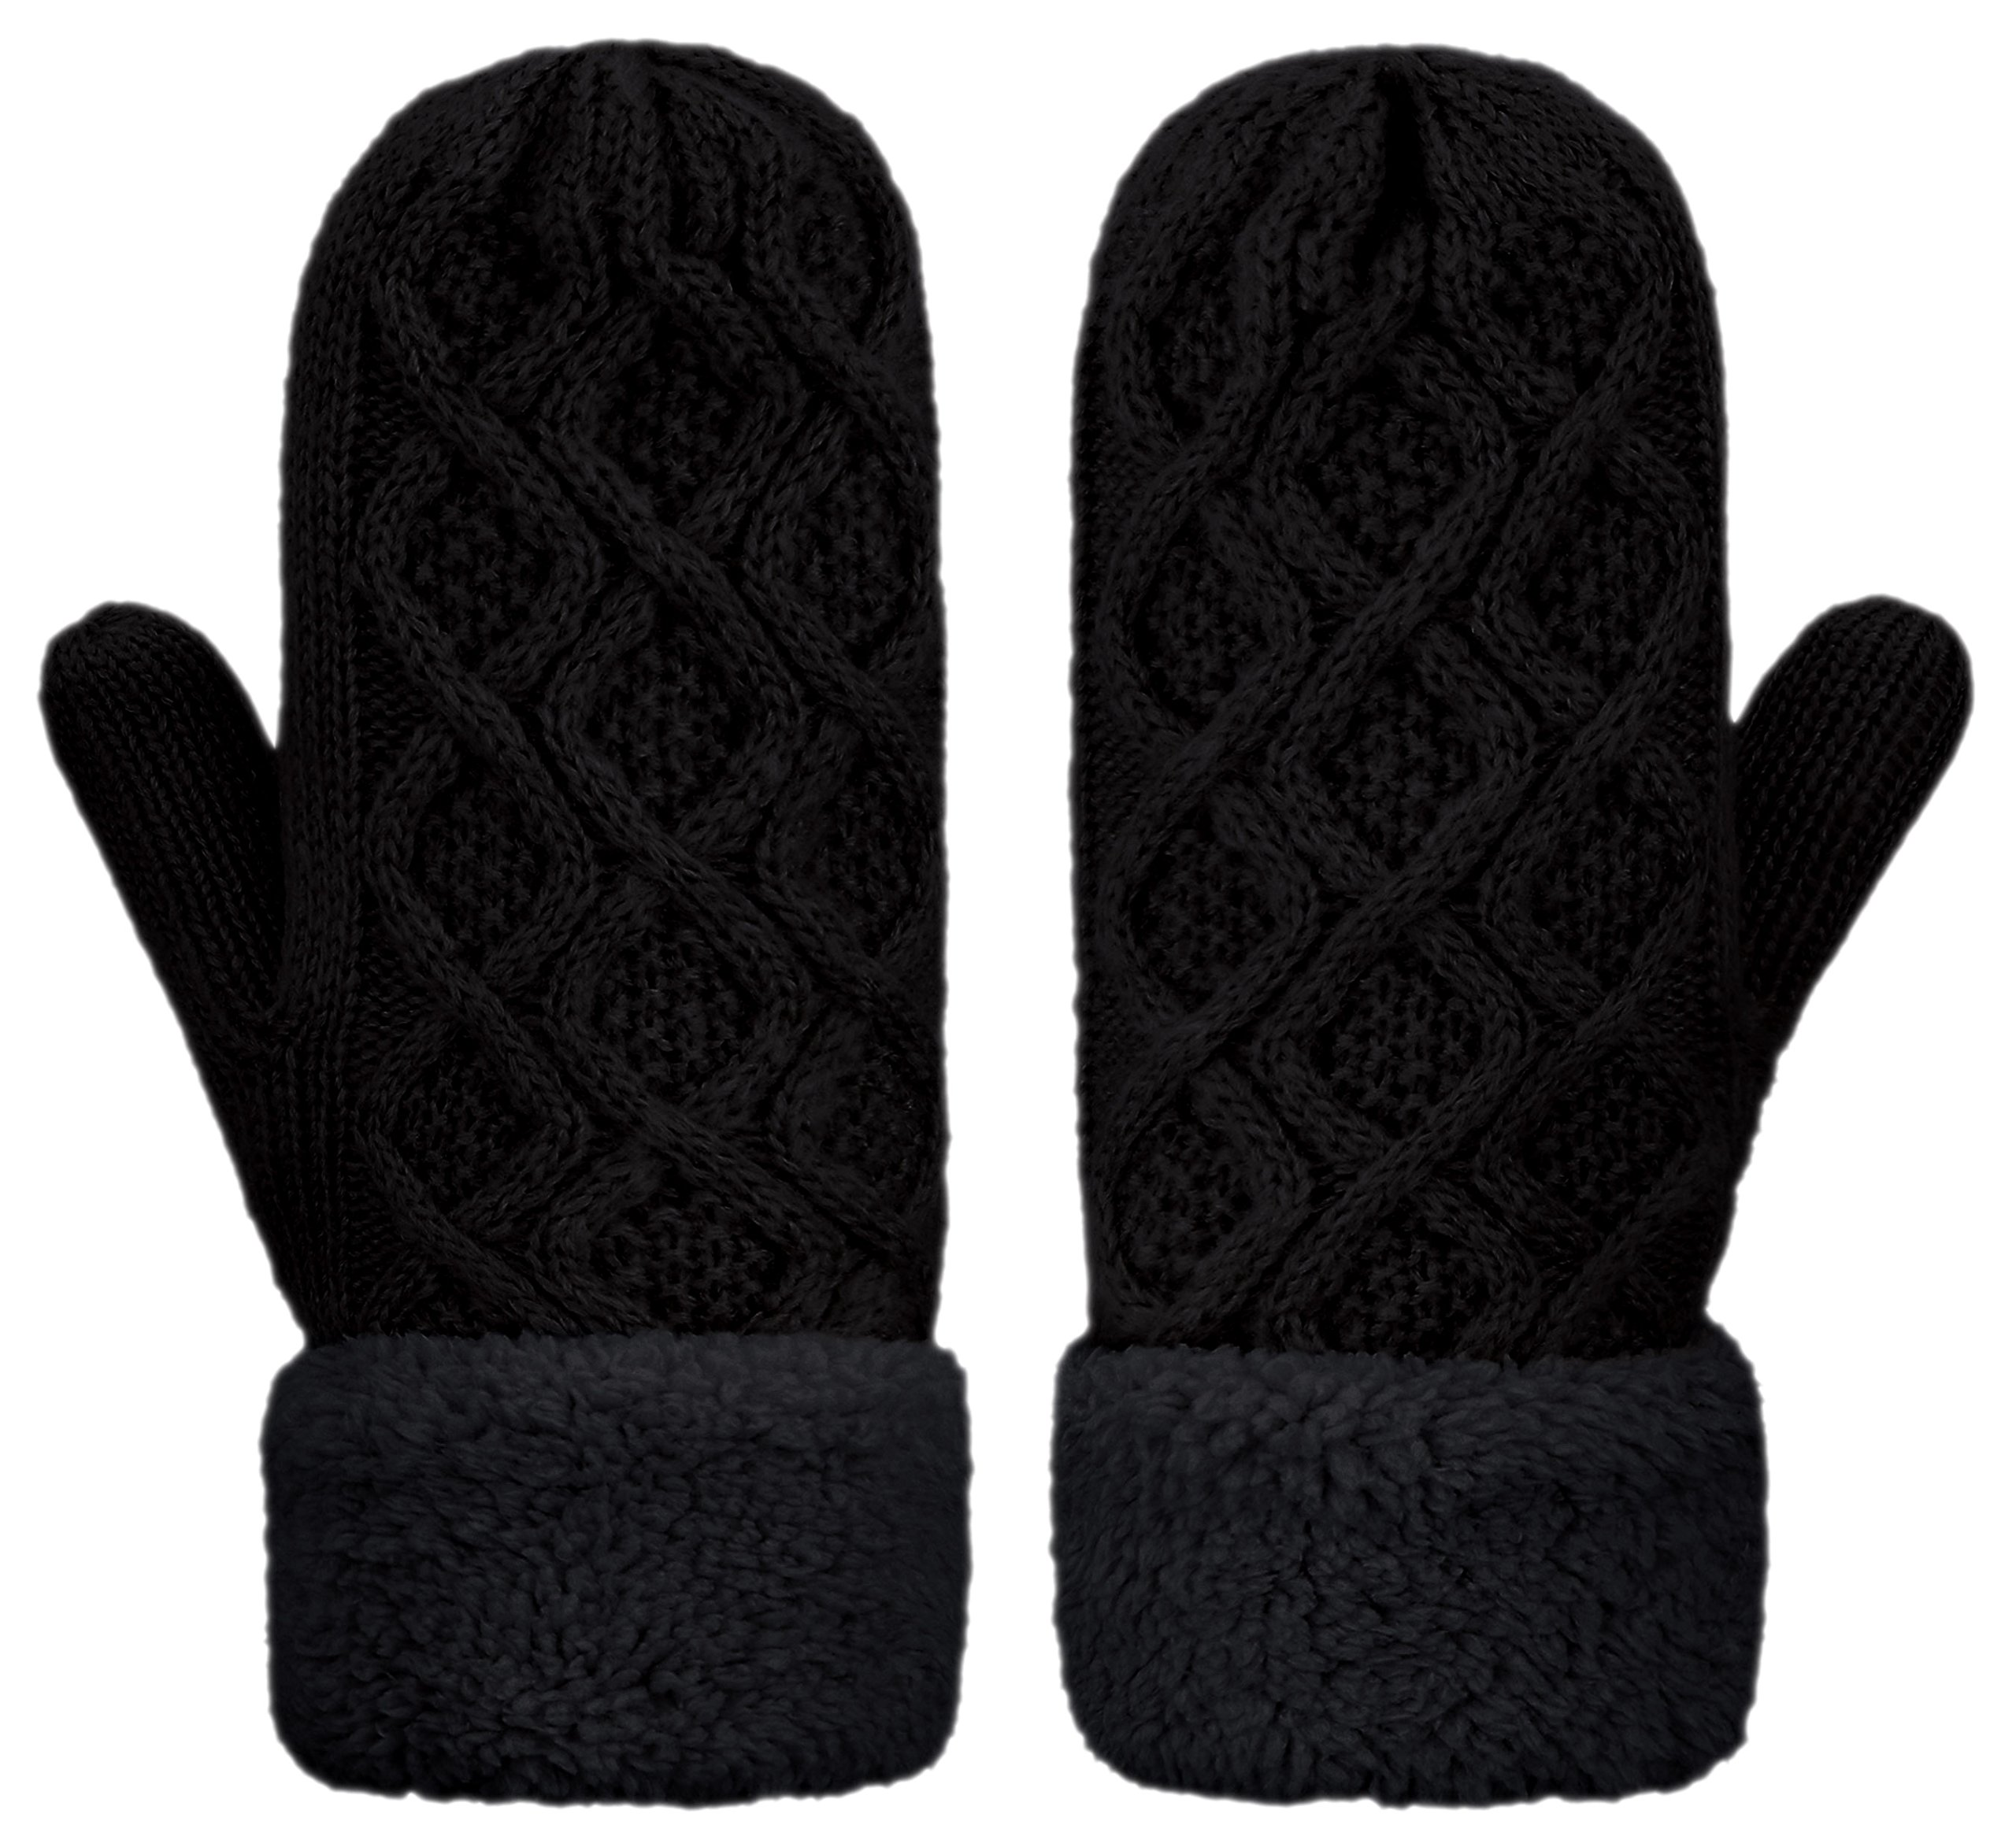 Nice quality! Will definitely keep your hands warm!